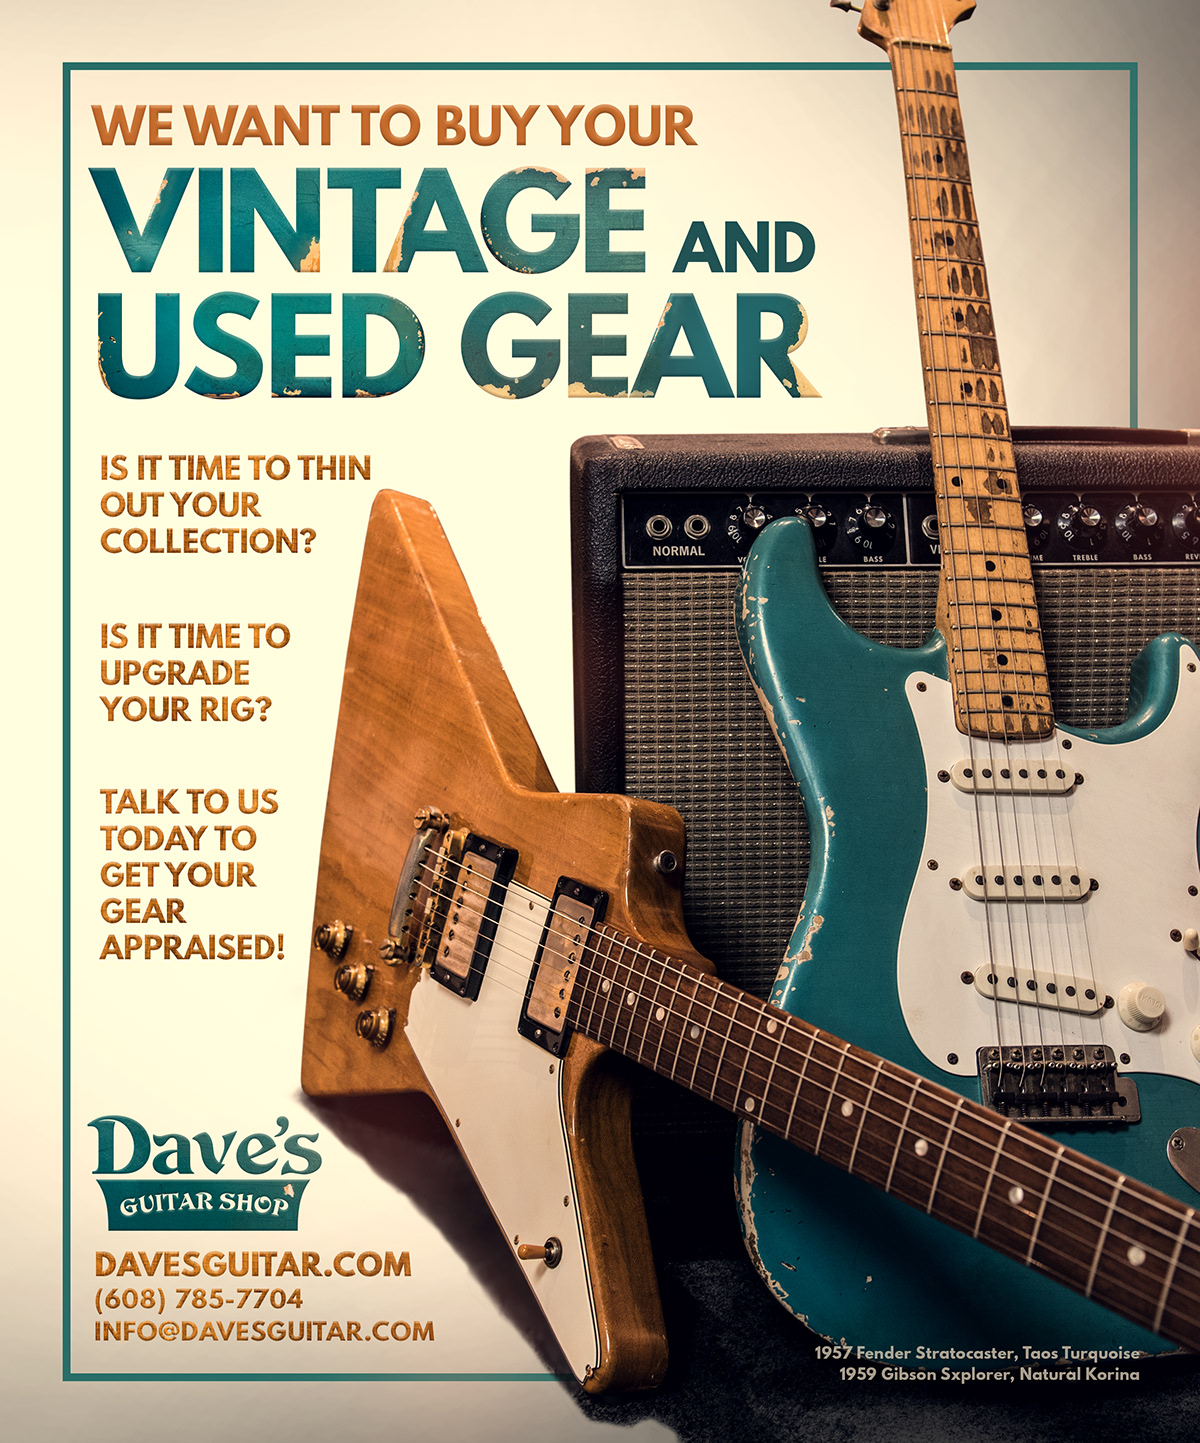 Vintage and Used Gear Ad Campaign - Dave's Guitar Shop on